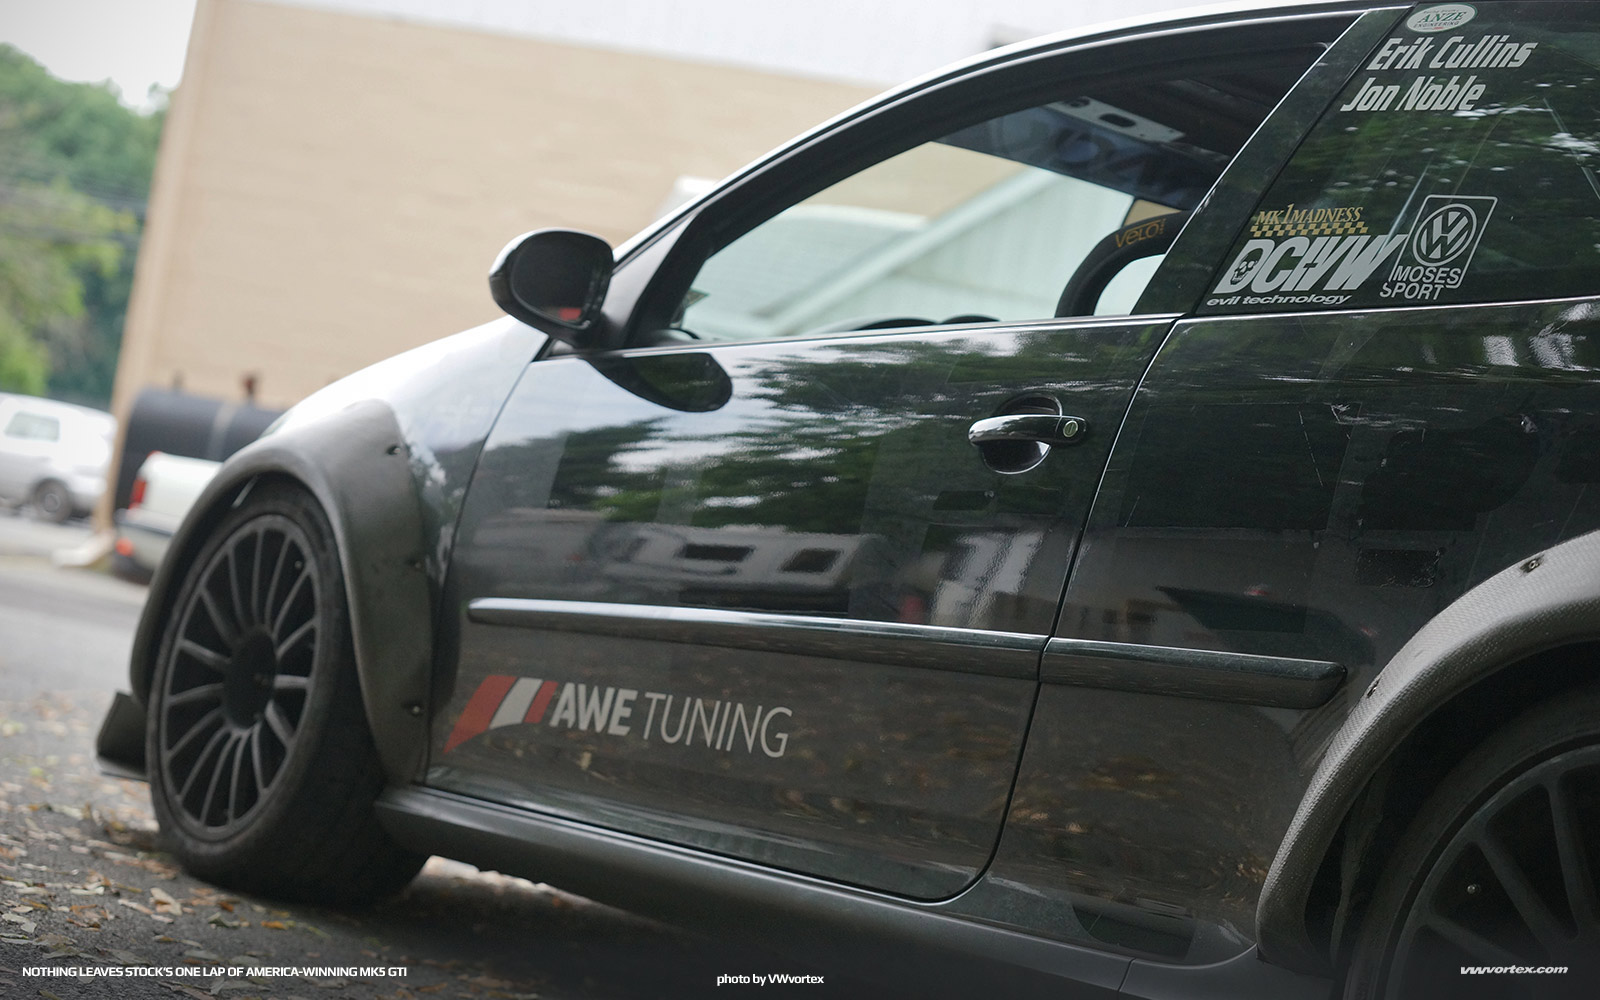 Nothing-Leaves-Stock-One-Lap-Winning-Volkswagen-GTI-370